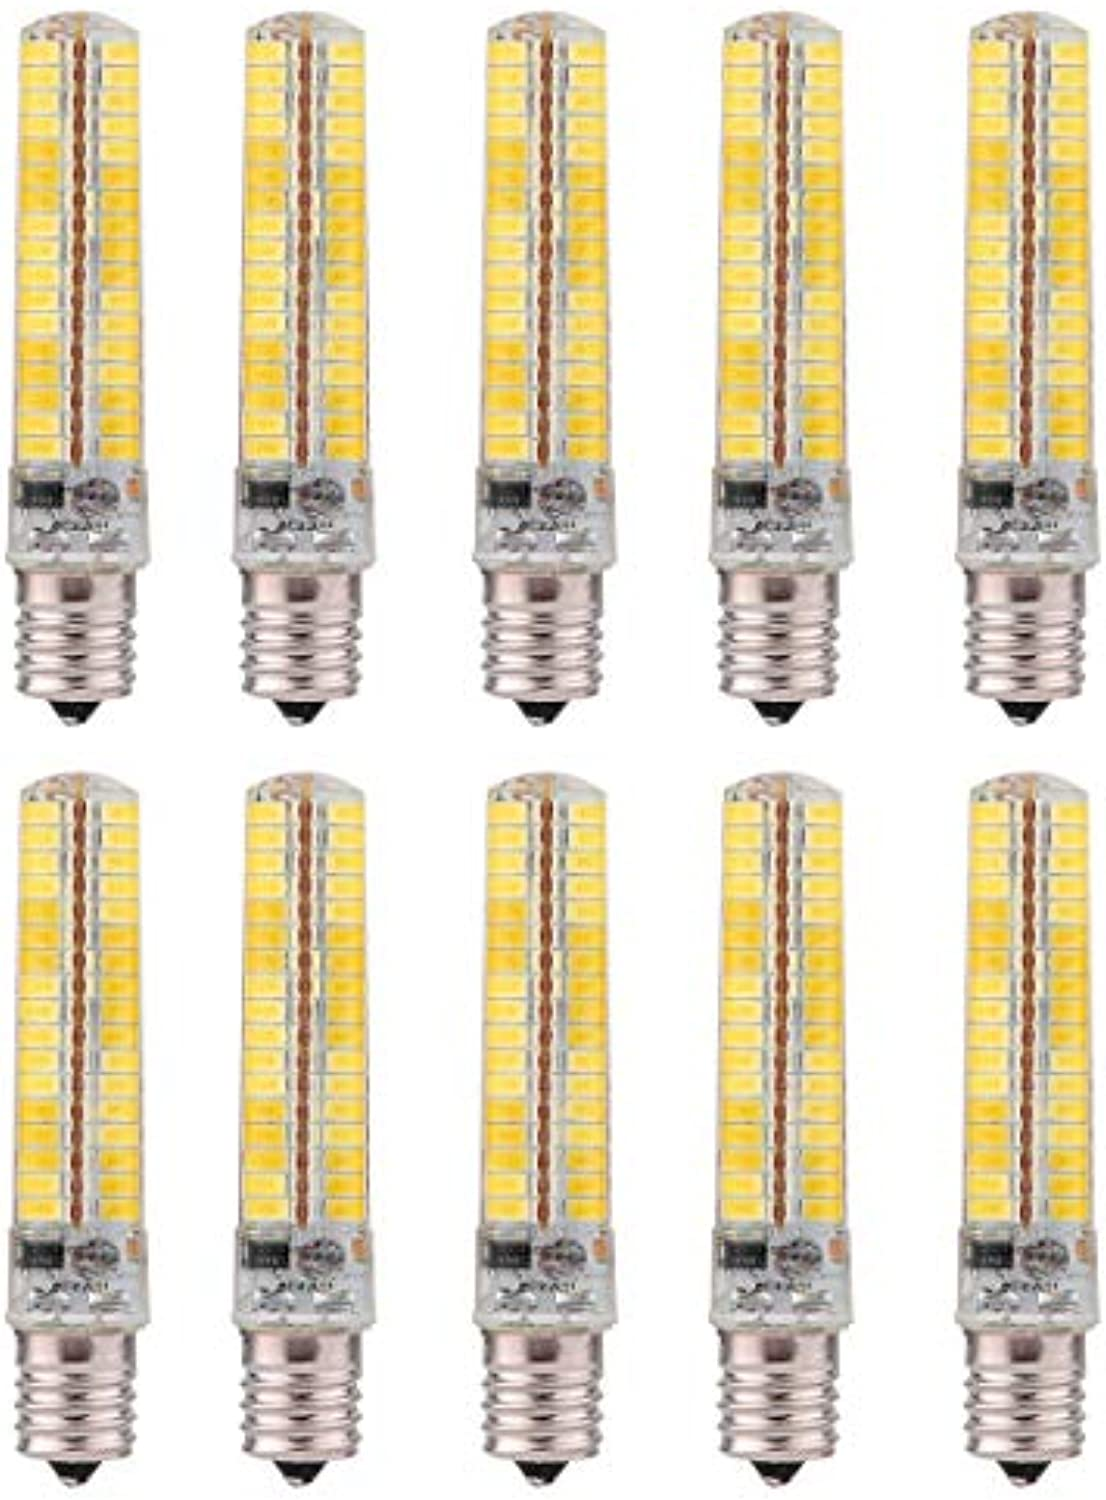 LED Birne E14 Silikon Mais Birne 5730 SMD 136LED Energiesparlampe Dimmbar 10W (90W Halogen quivalent) LED Birne für Hauptbeleuchtung AC 220-240V (10er Pack) LED Energiesparlampe ( Gre   Warmwei )